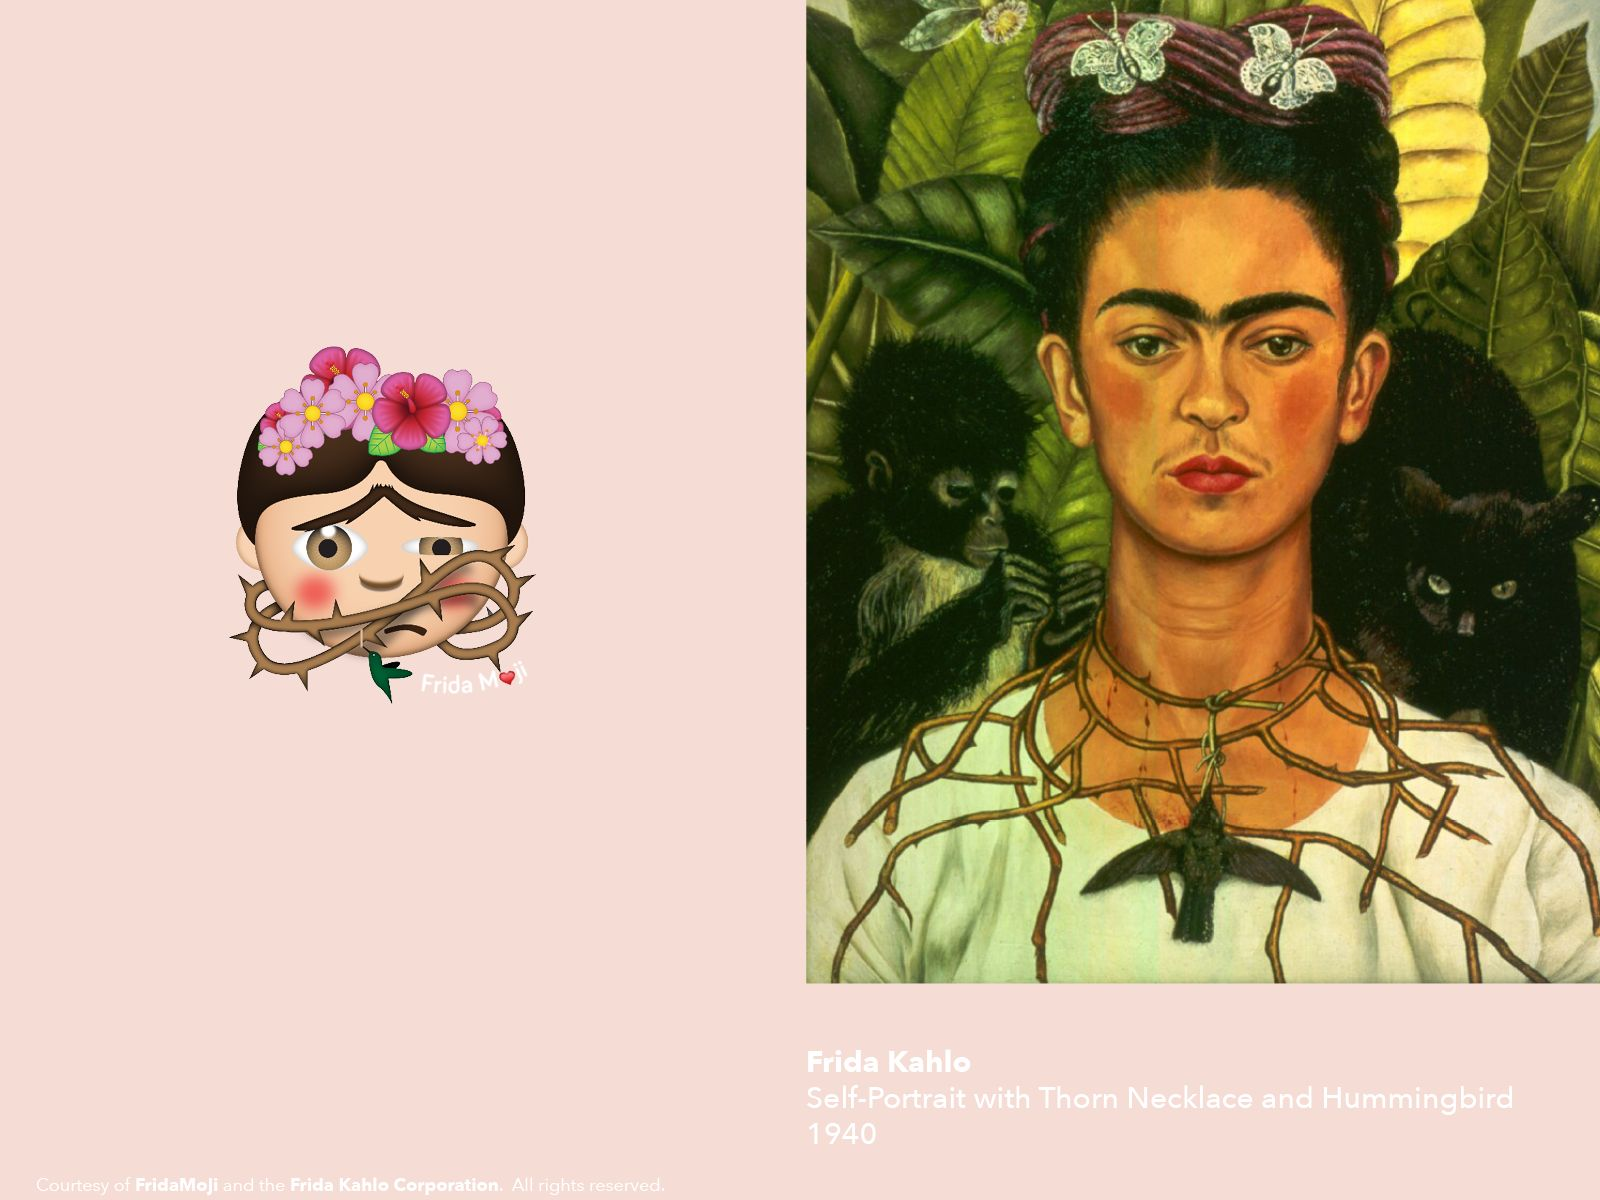 frida kahlo self portrait with thorn necklace and hummingbird essay Surrealist painter frida kahlo has been called one of mexico's greatest artists because of her brutal and revealing self-portraits self-portrait with thorn necklace and hummingbird is her most popular, and also one that contains many tokens of her life and work.